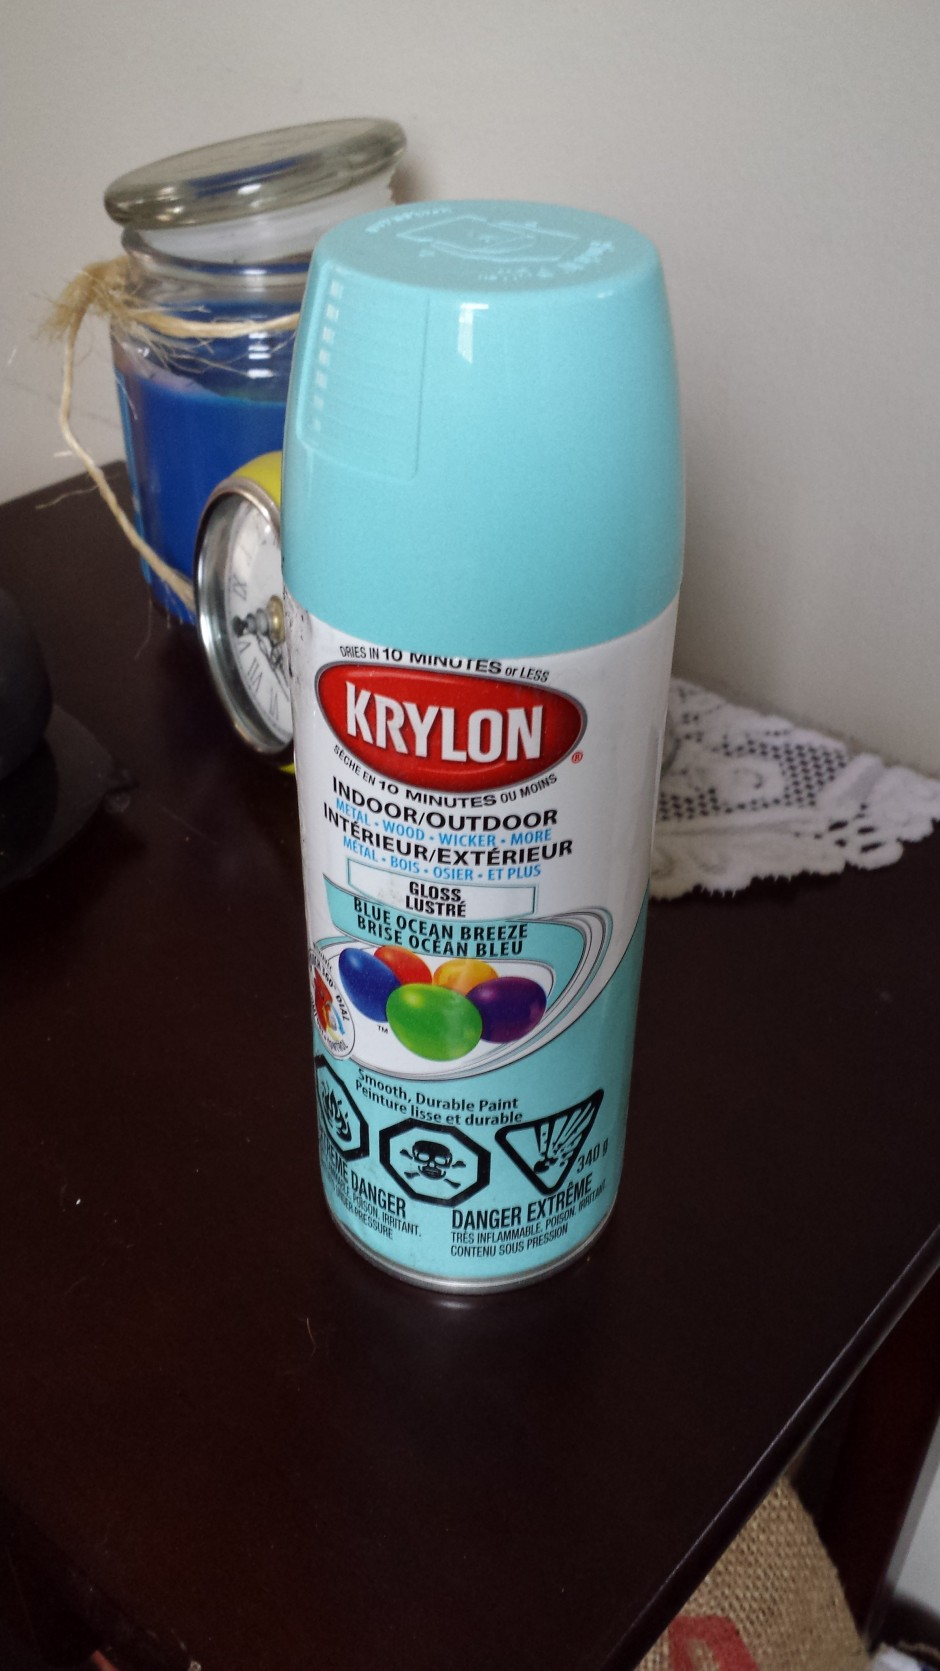 Krylon Indoor/Outdoor Blue Ocean Breeze